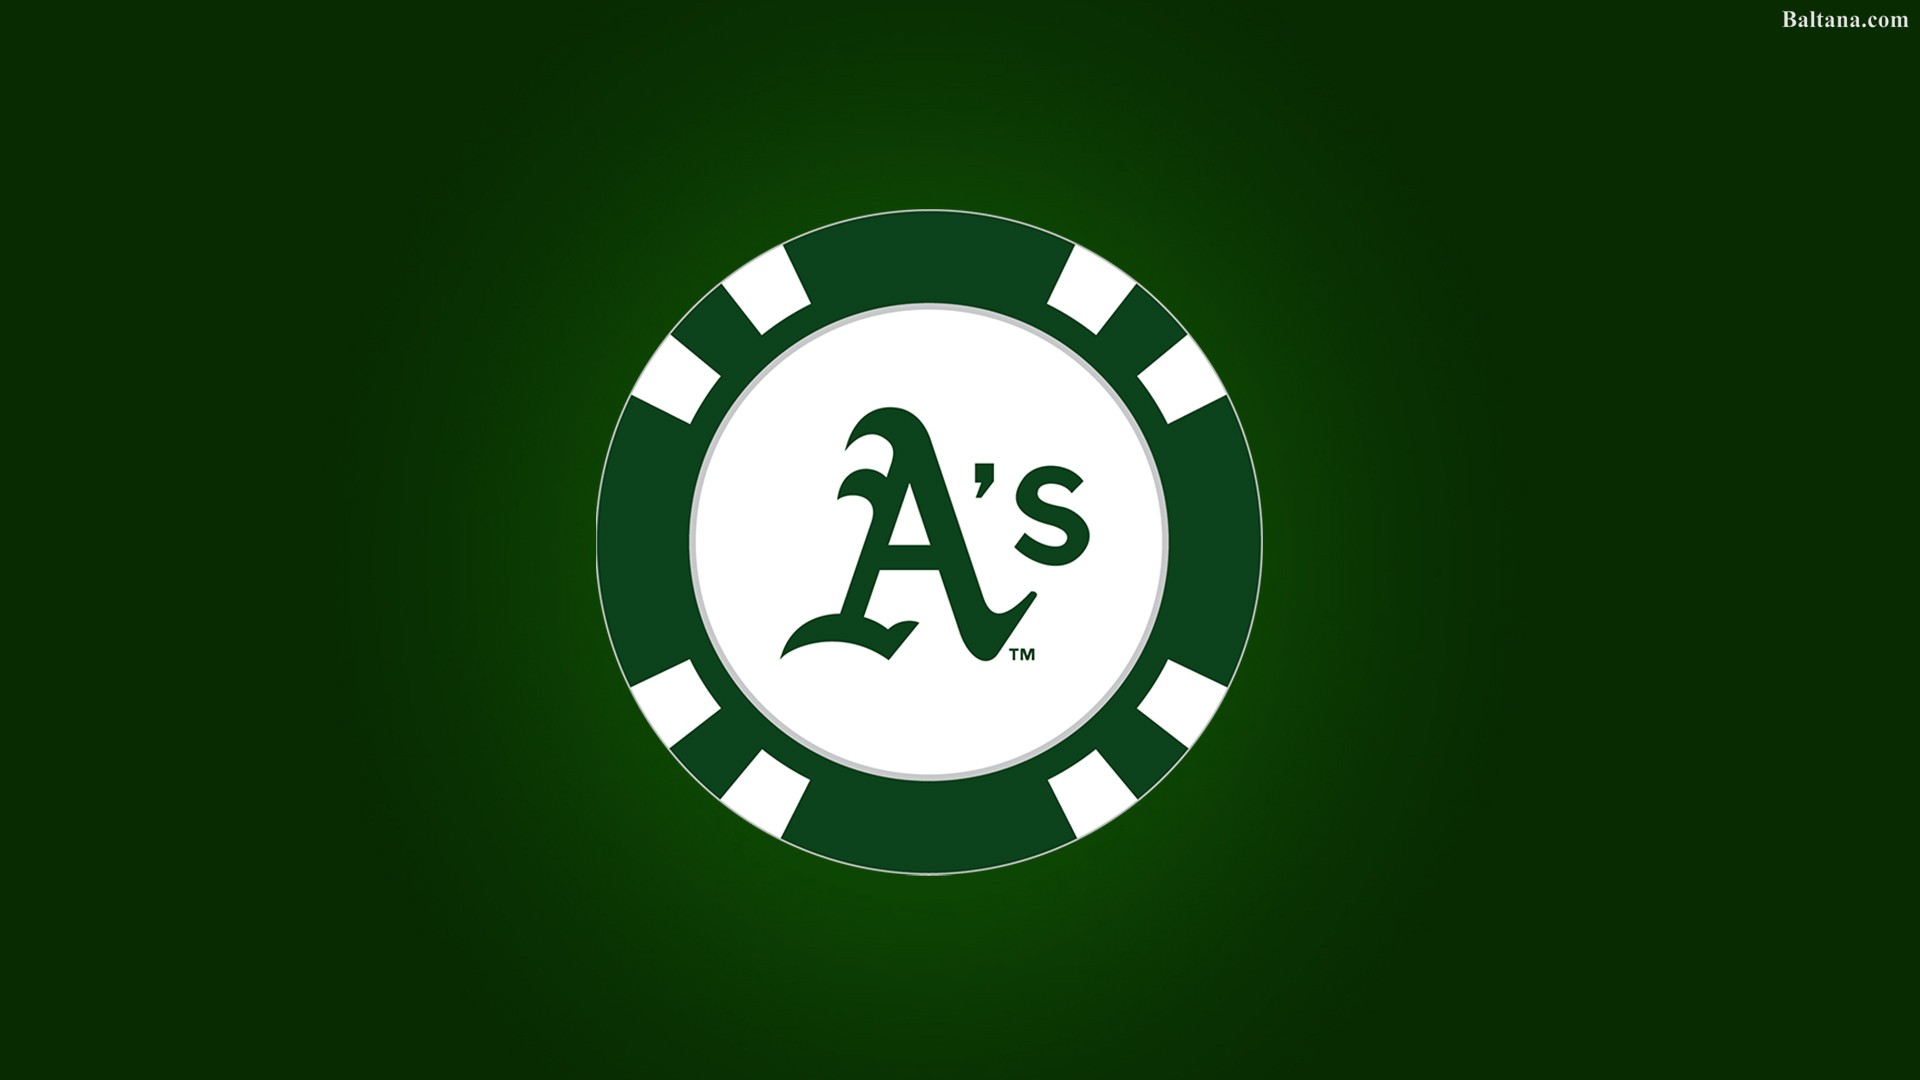 Oakland Athletics Background Wallpaper 33232   Baltana 1920x1080